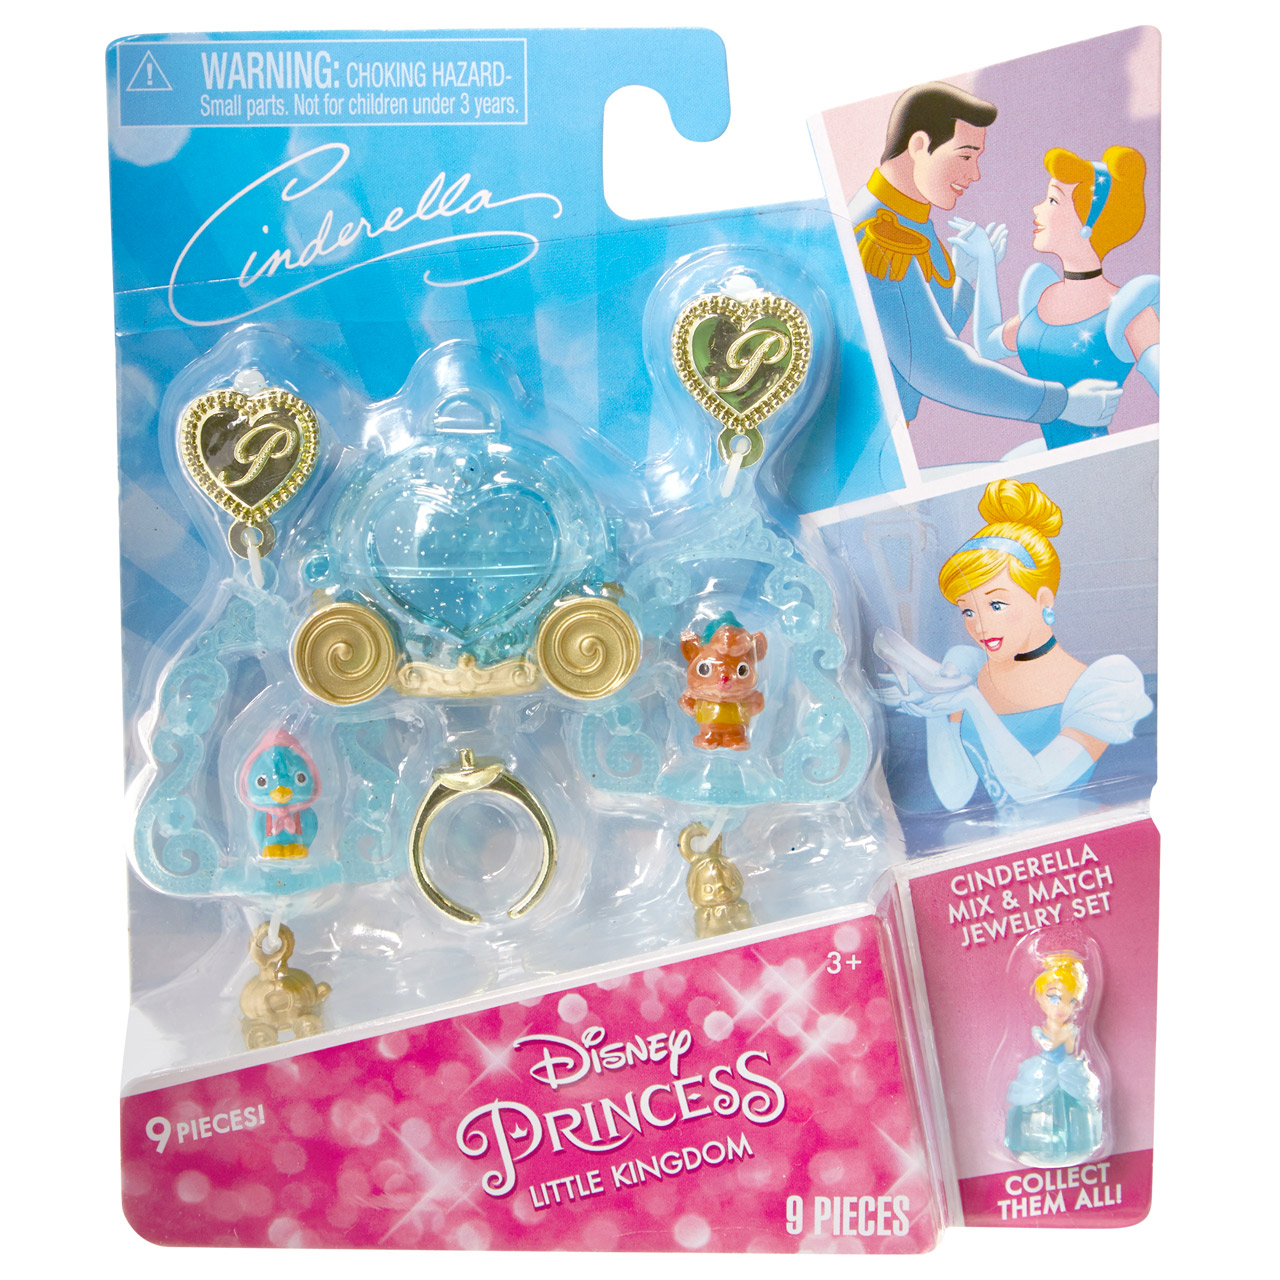 Disney Princess Little Kingdom Nail Polish Makeup Sets Cinderella Midnight Manis